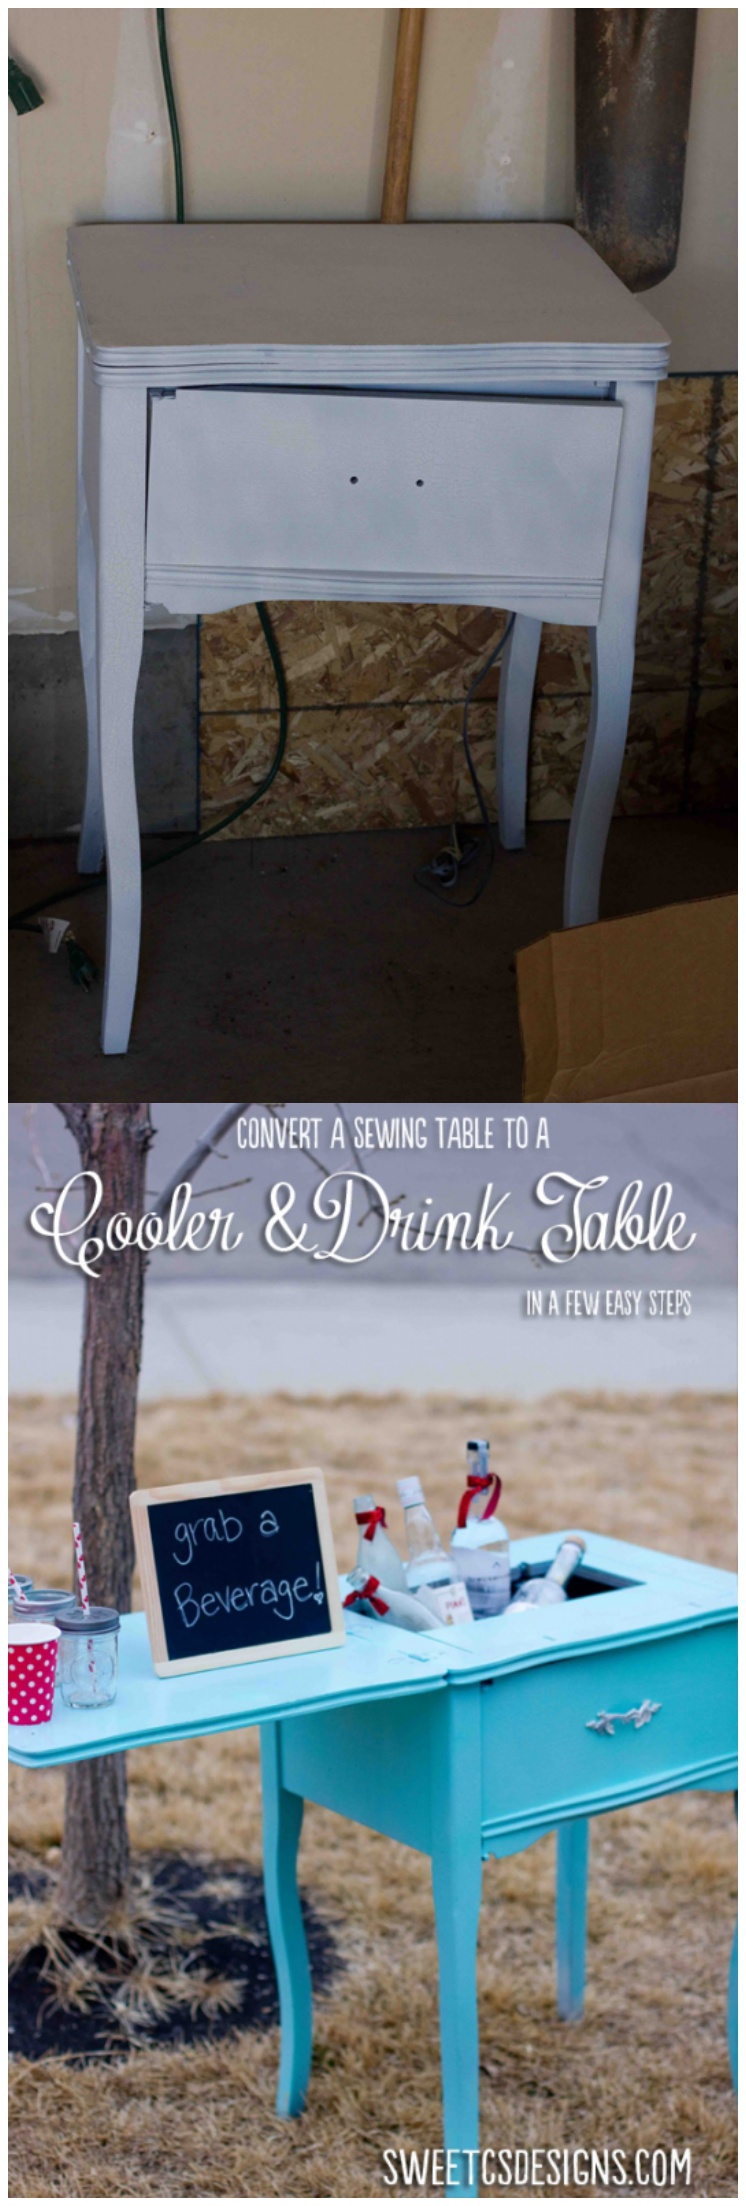 Sewing Table Turned Party Cooler & Drink Table